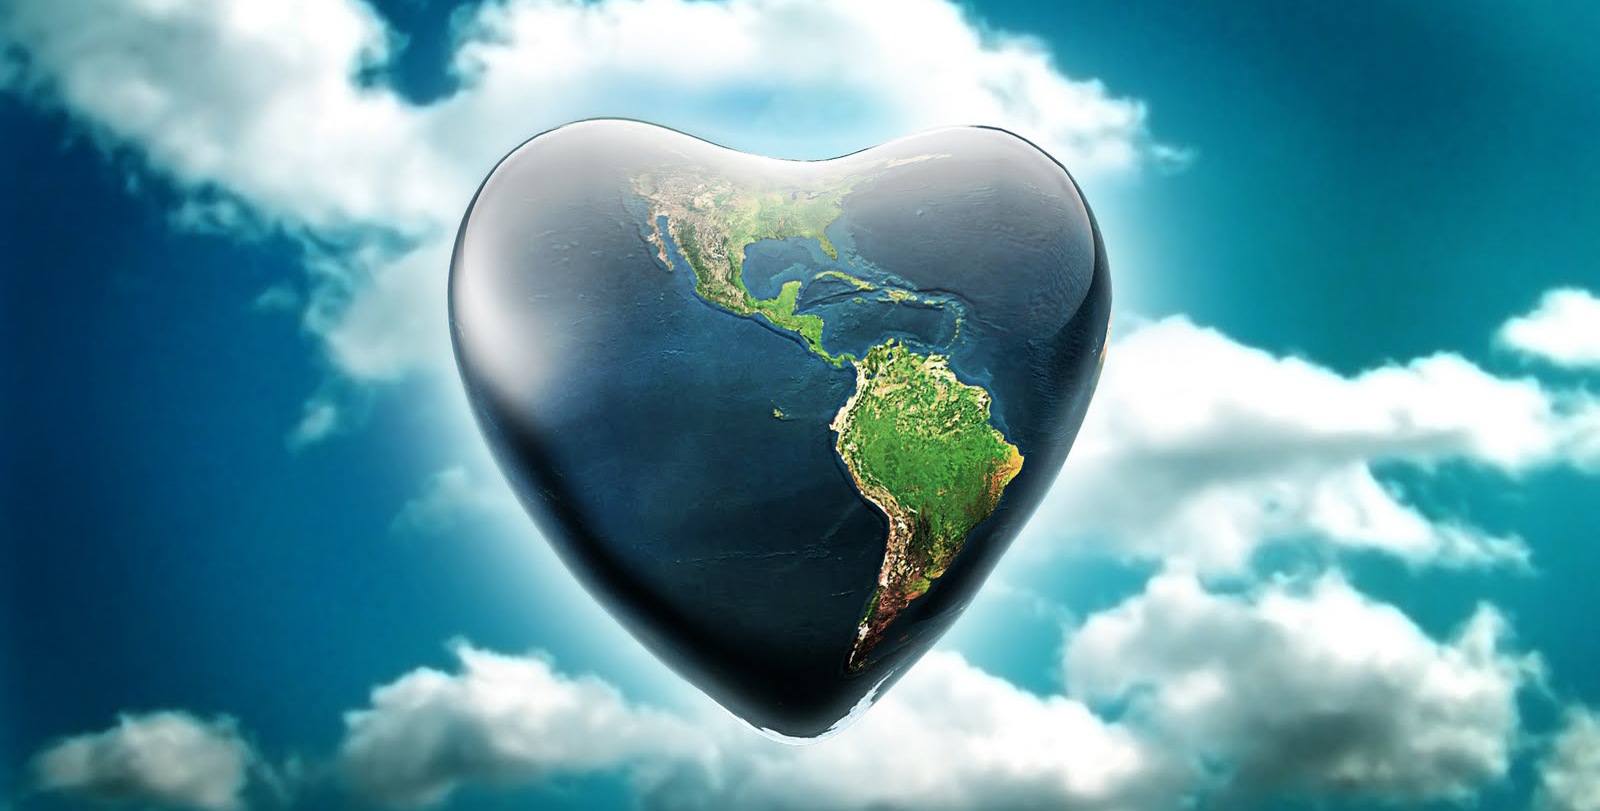 Heart Shaped Planet Earth render in front of clouds